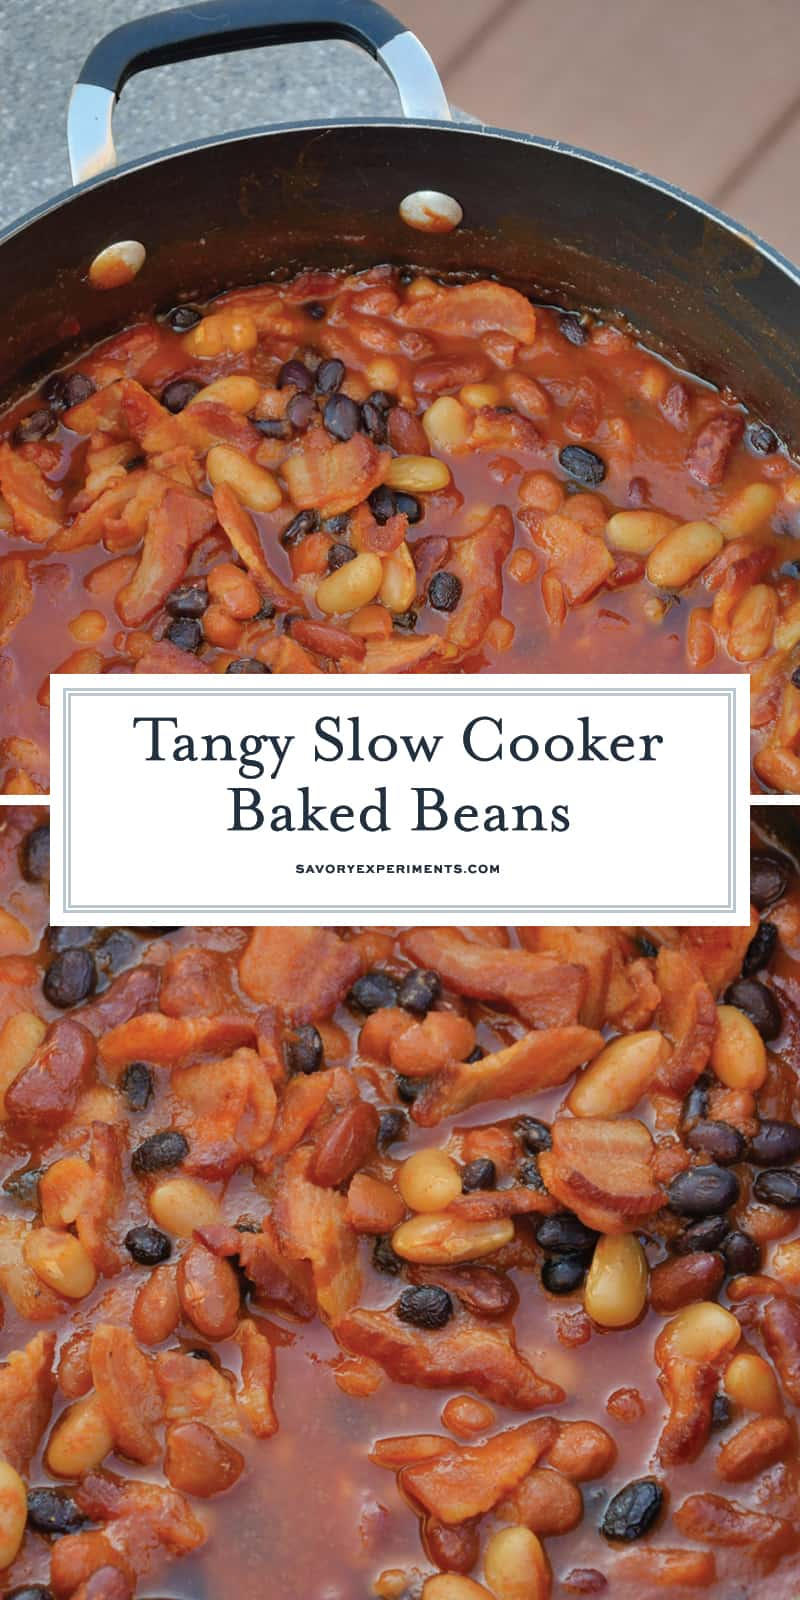 Slow Cooker Baked Beans is made with 4 types of beans simmered with brown sugar, bacon, and more! An Easy Baked Bean recipe the whole family will love. #bakedbeansrecipe #homemadebakedbeans #crockpotbakedbeans www.savoryexperiments.com